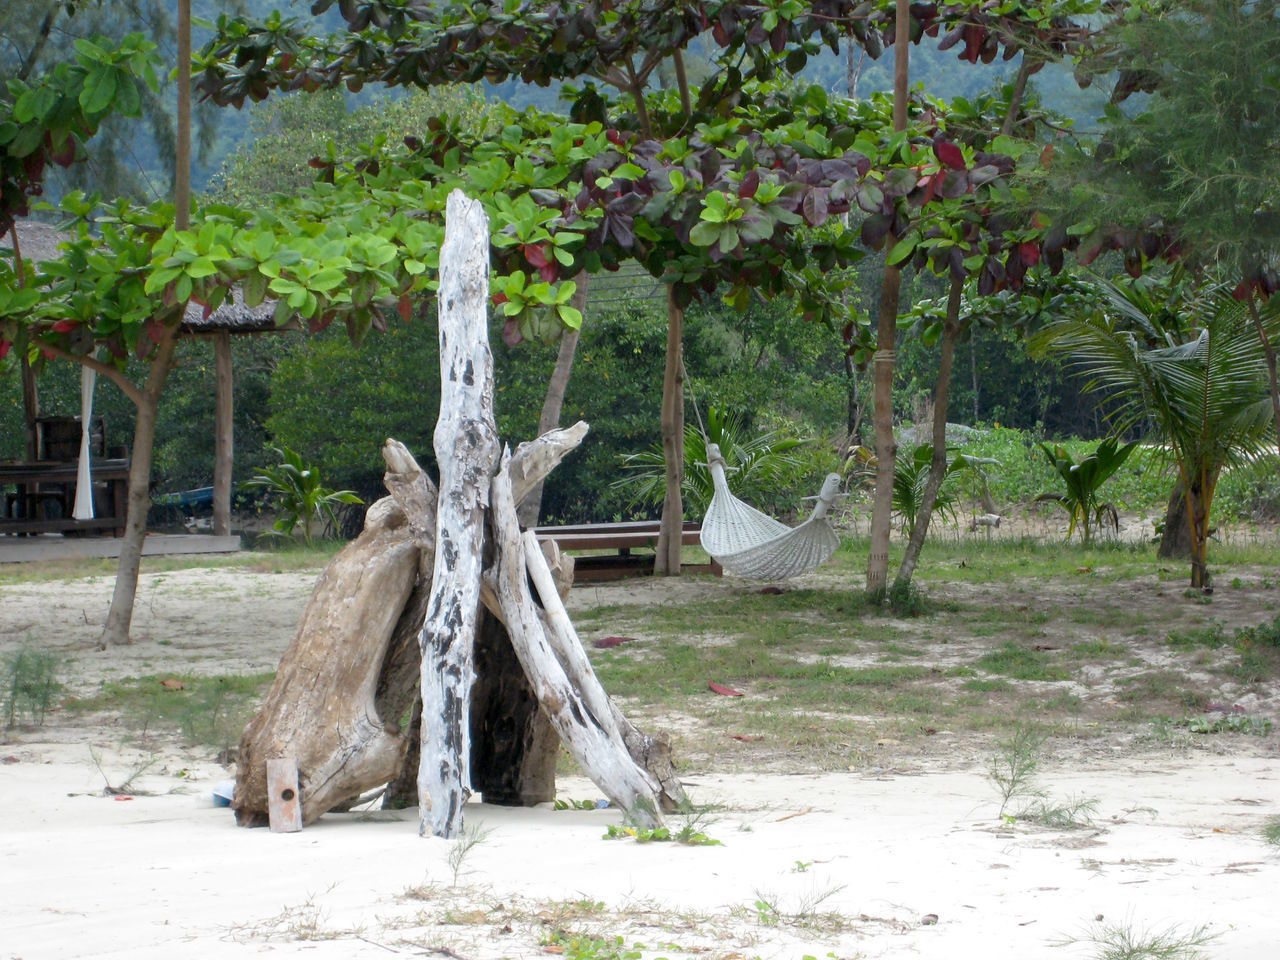 Day Growth Hamak Heavenly Nature No People Outdoors Paradise Tree Tree Trunk Tropic Tropical Plants